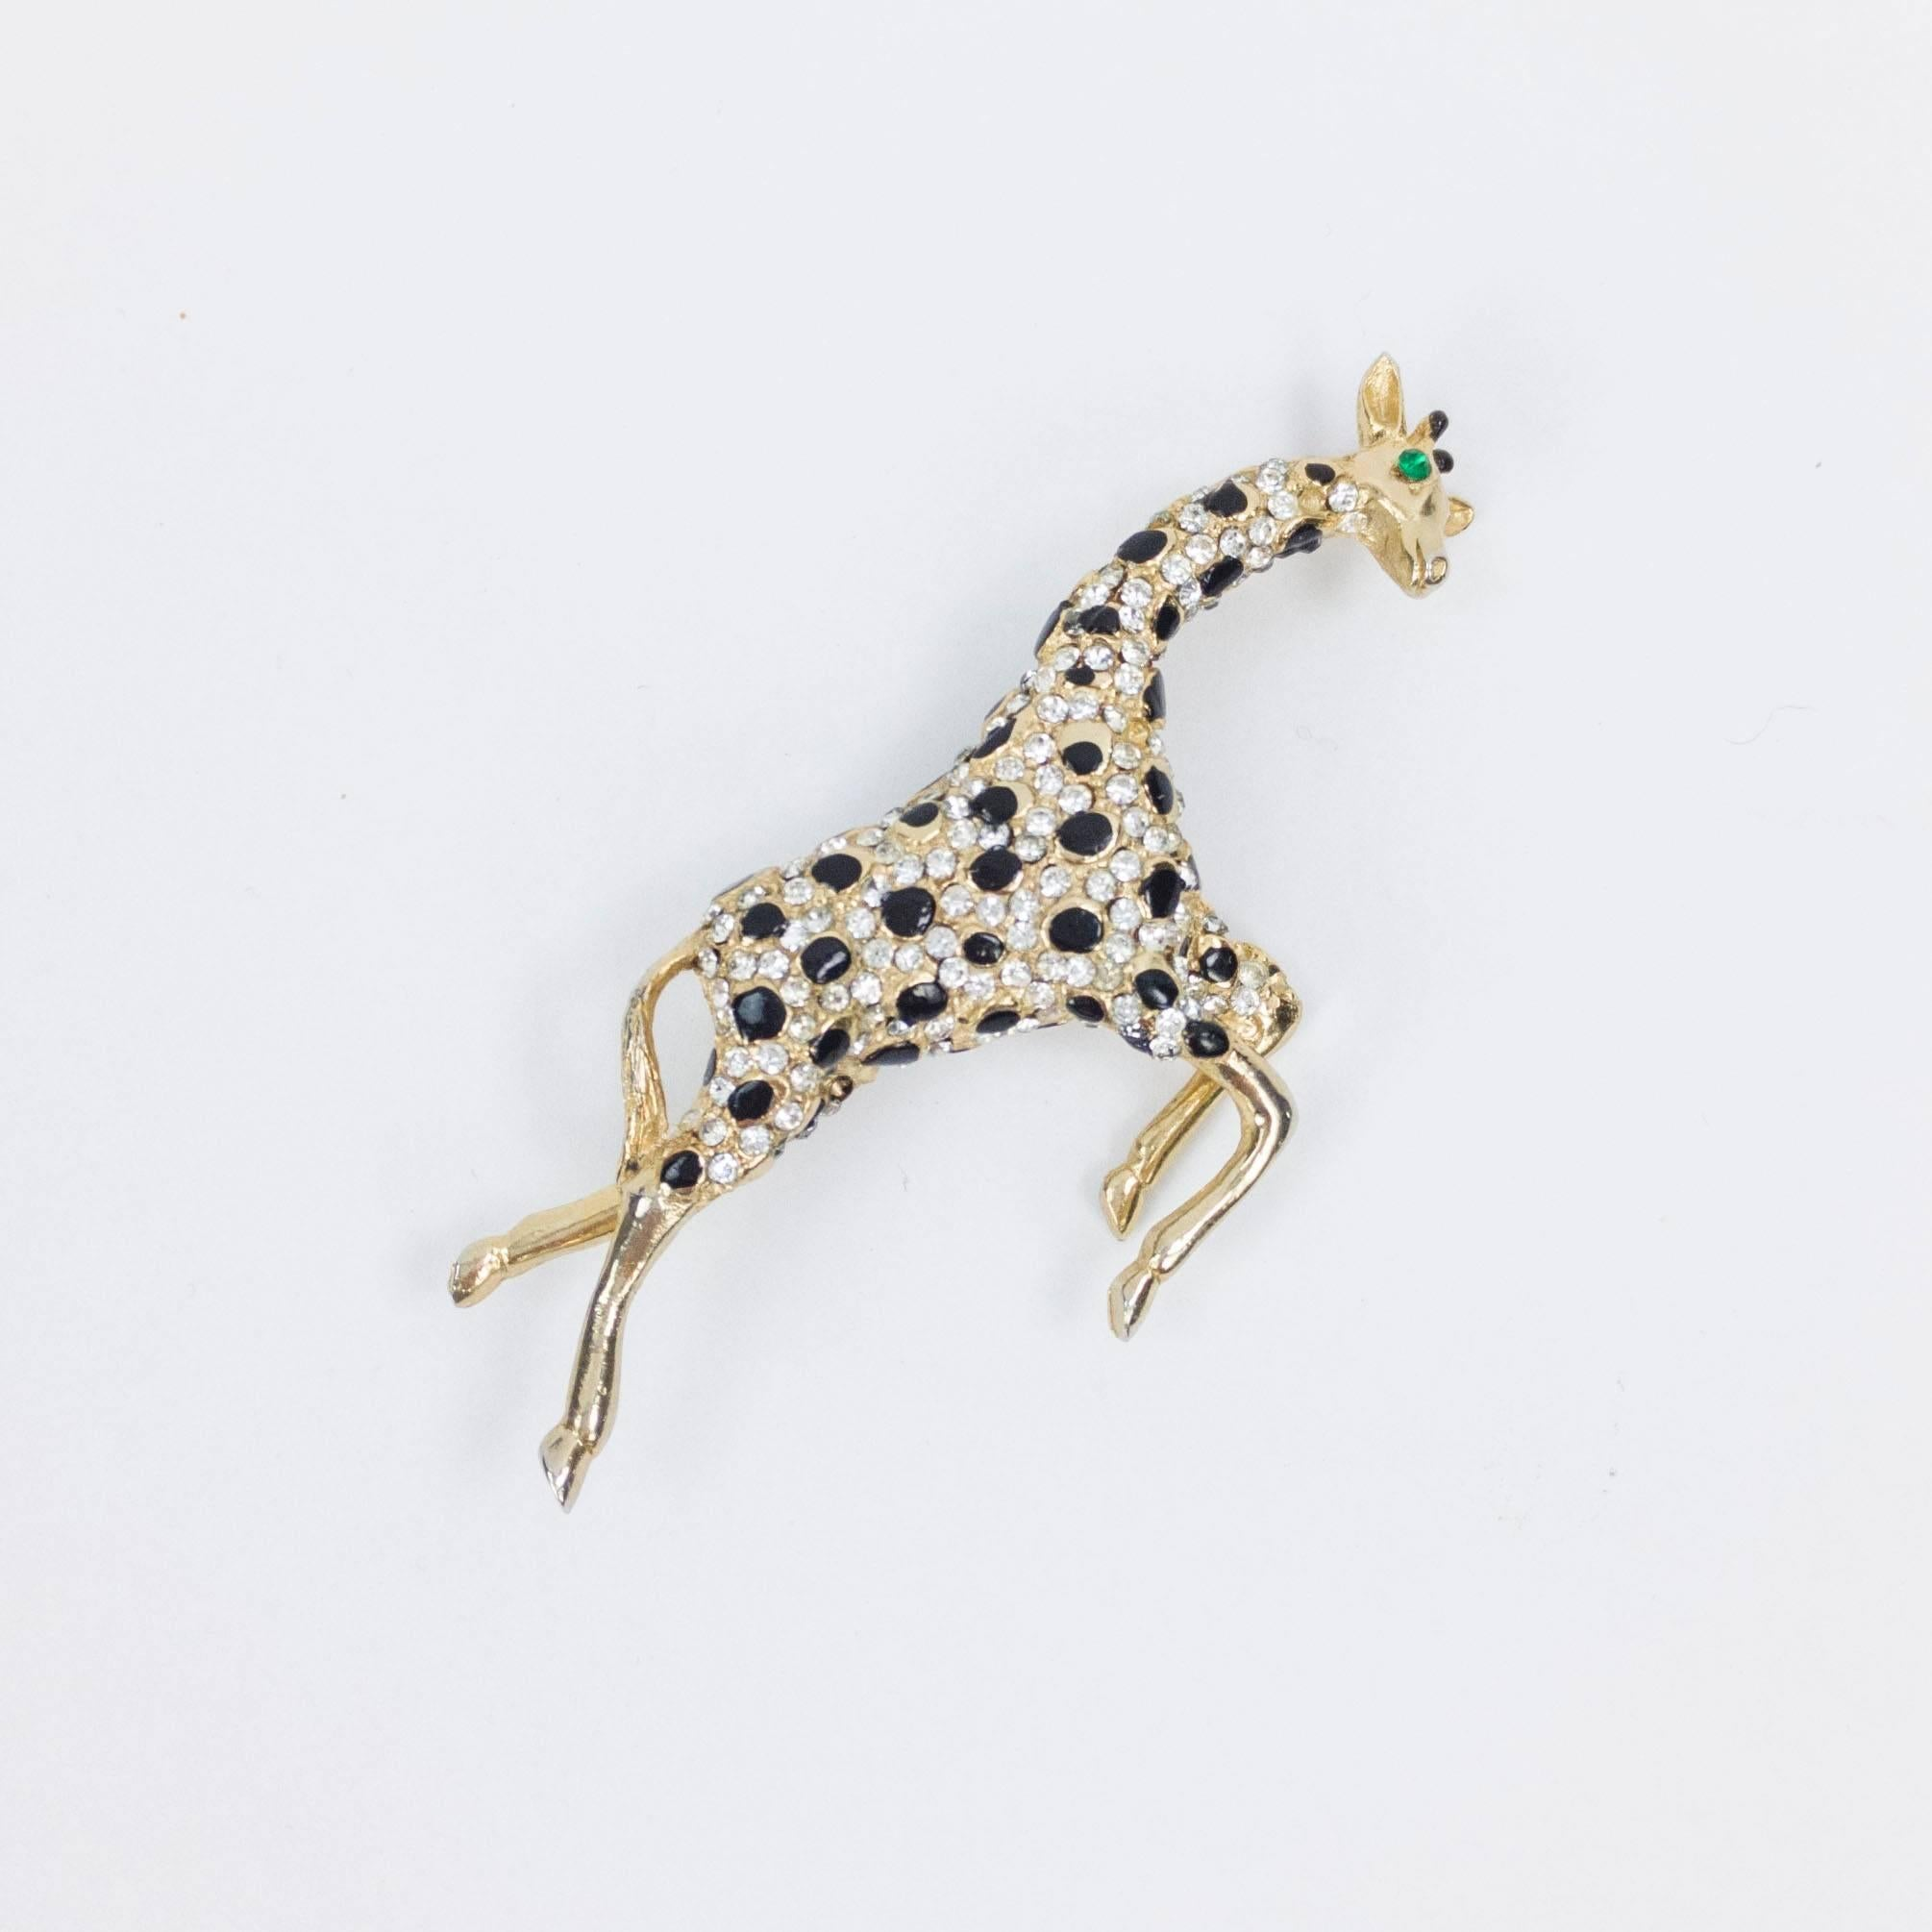 pin gold fashion enamel jewelry pins color rhinestone brooches animal women broches deer office brooch ladies